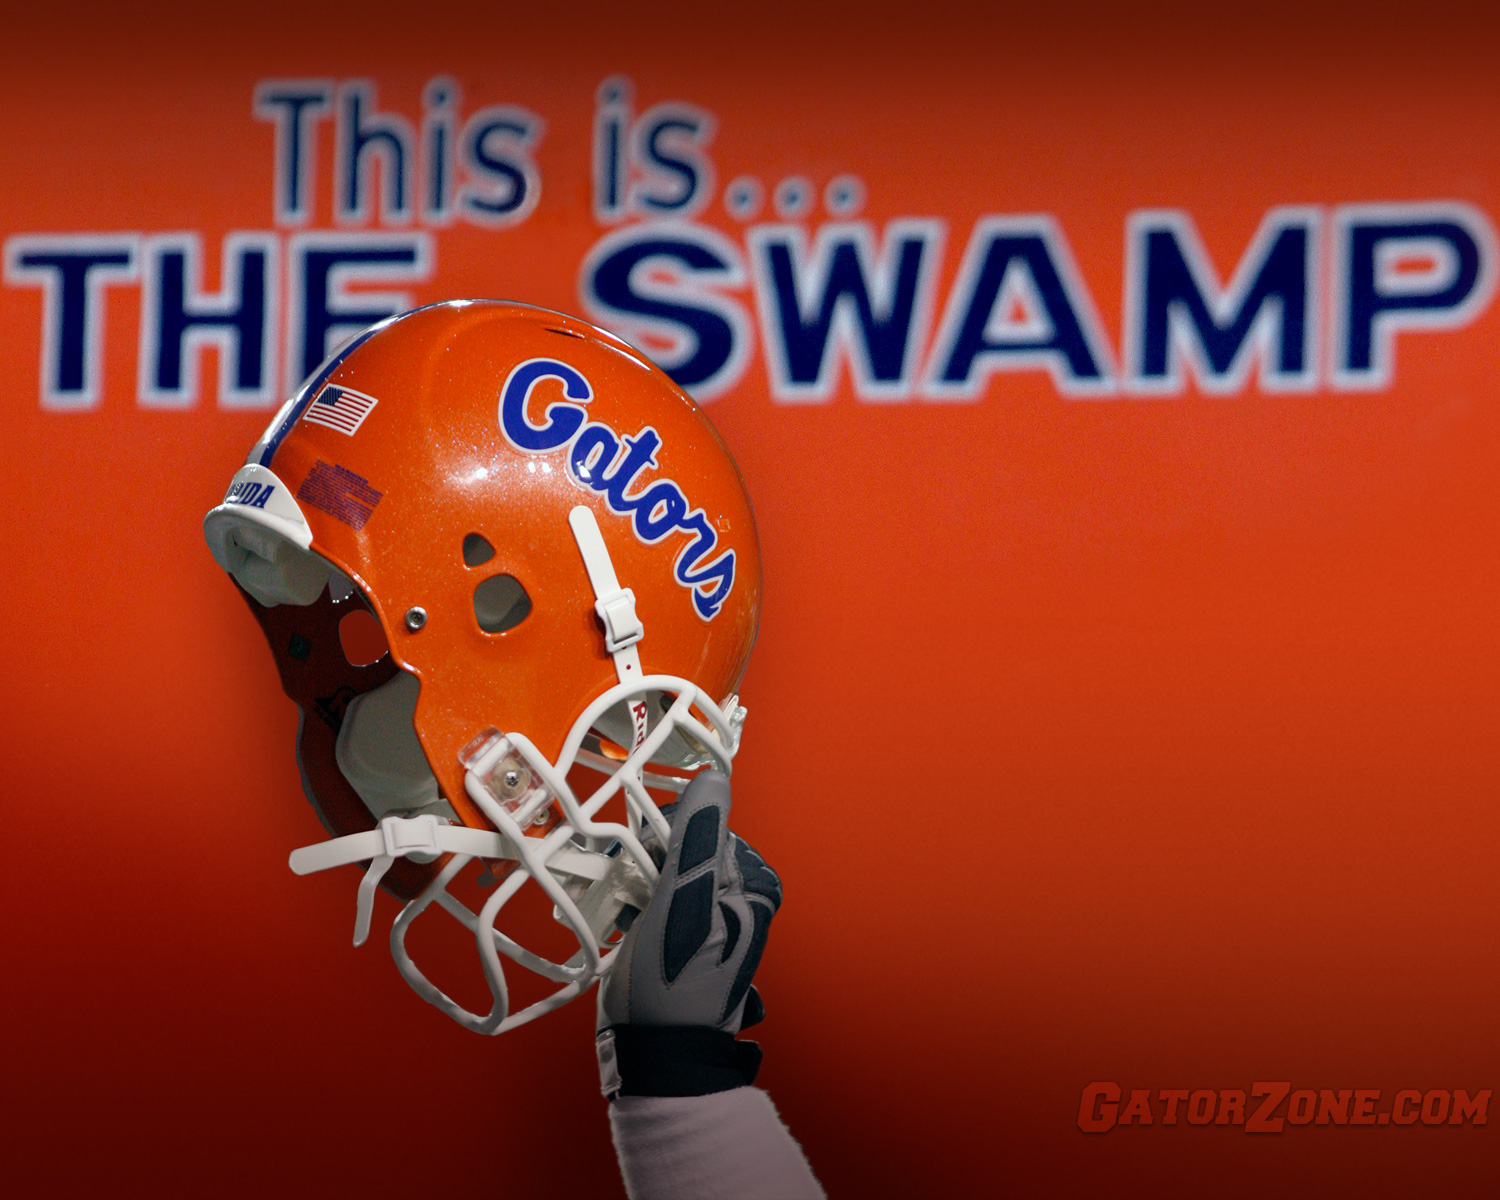 The Swamp Photo